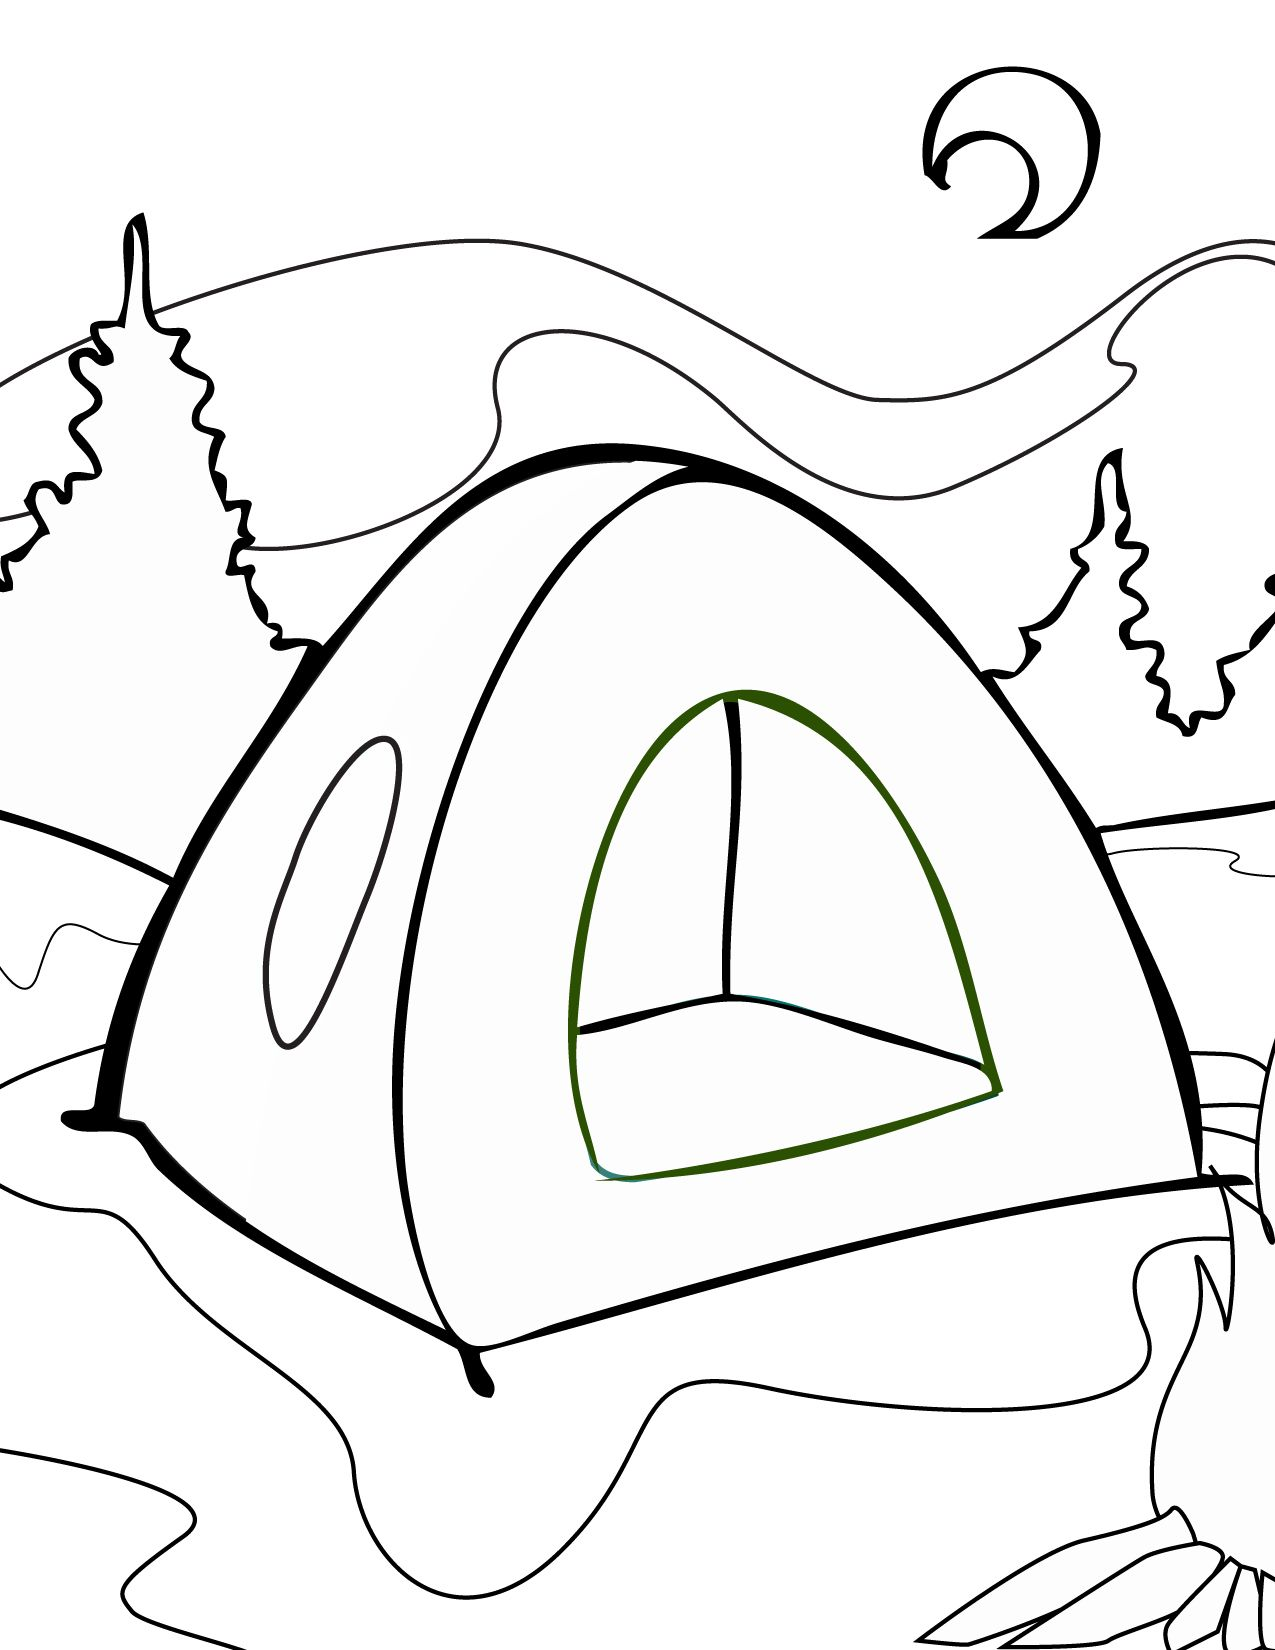 Camping Tent Coloring Pages Look At These Amazing Conversion Camping Tents They Re Awesome